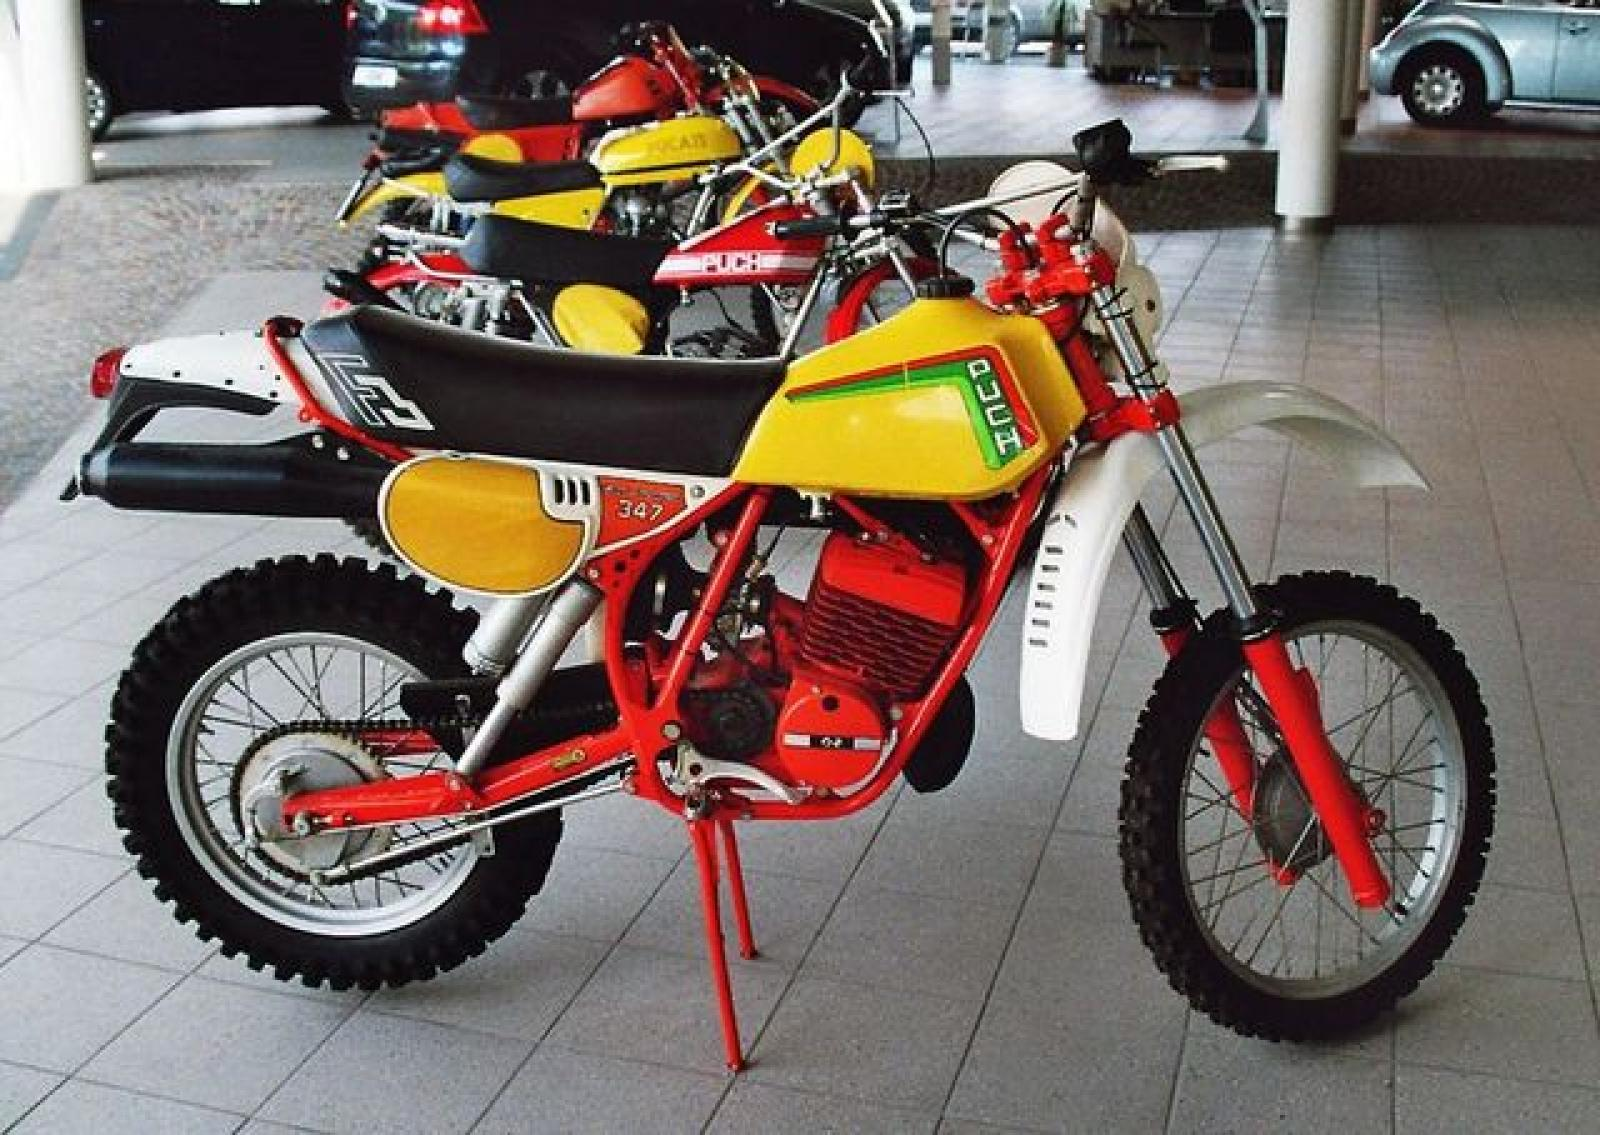 Puch GS 560 F 4 T 1987 images #158609